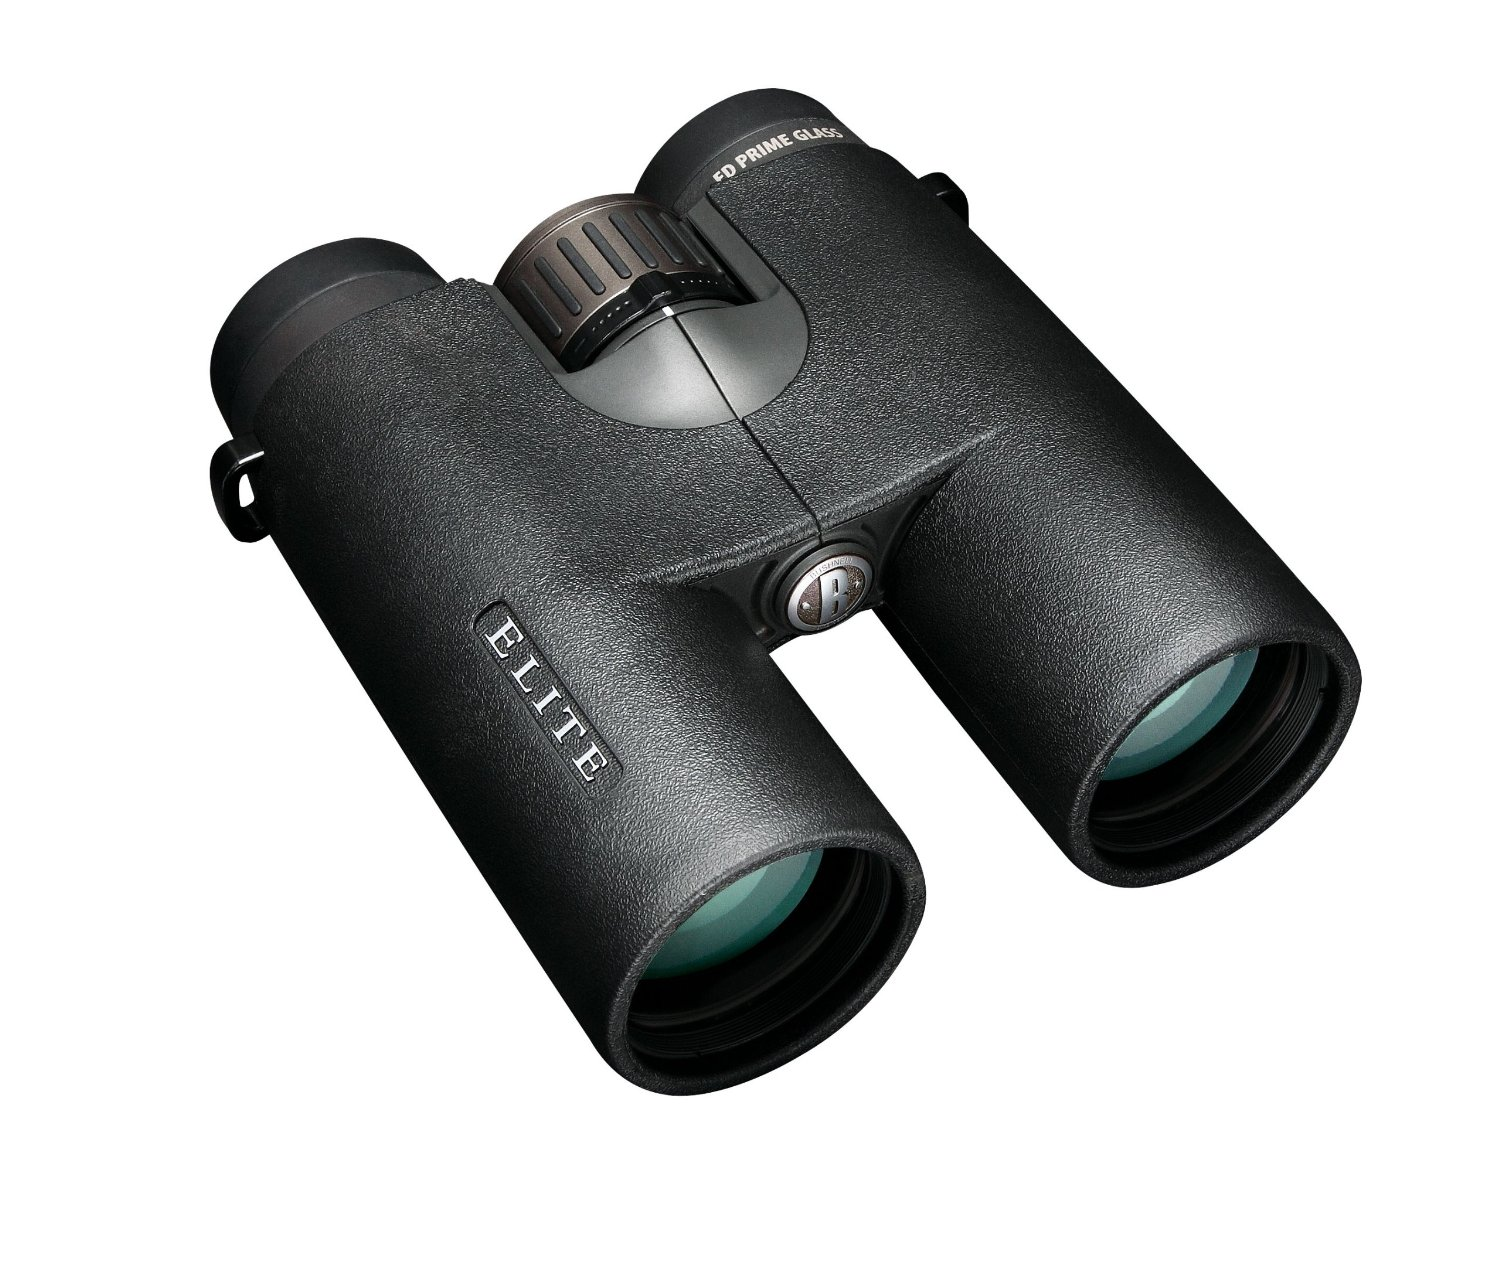 Бинокль Bushnell 10x42 8X42 620142ED 628042ED бинокль bushnell legend ultra hd 10x42 камуфляж